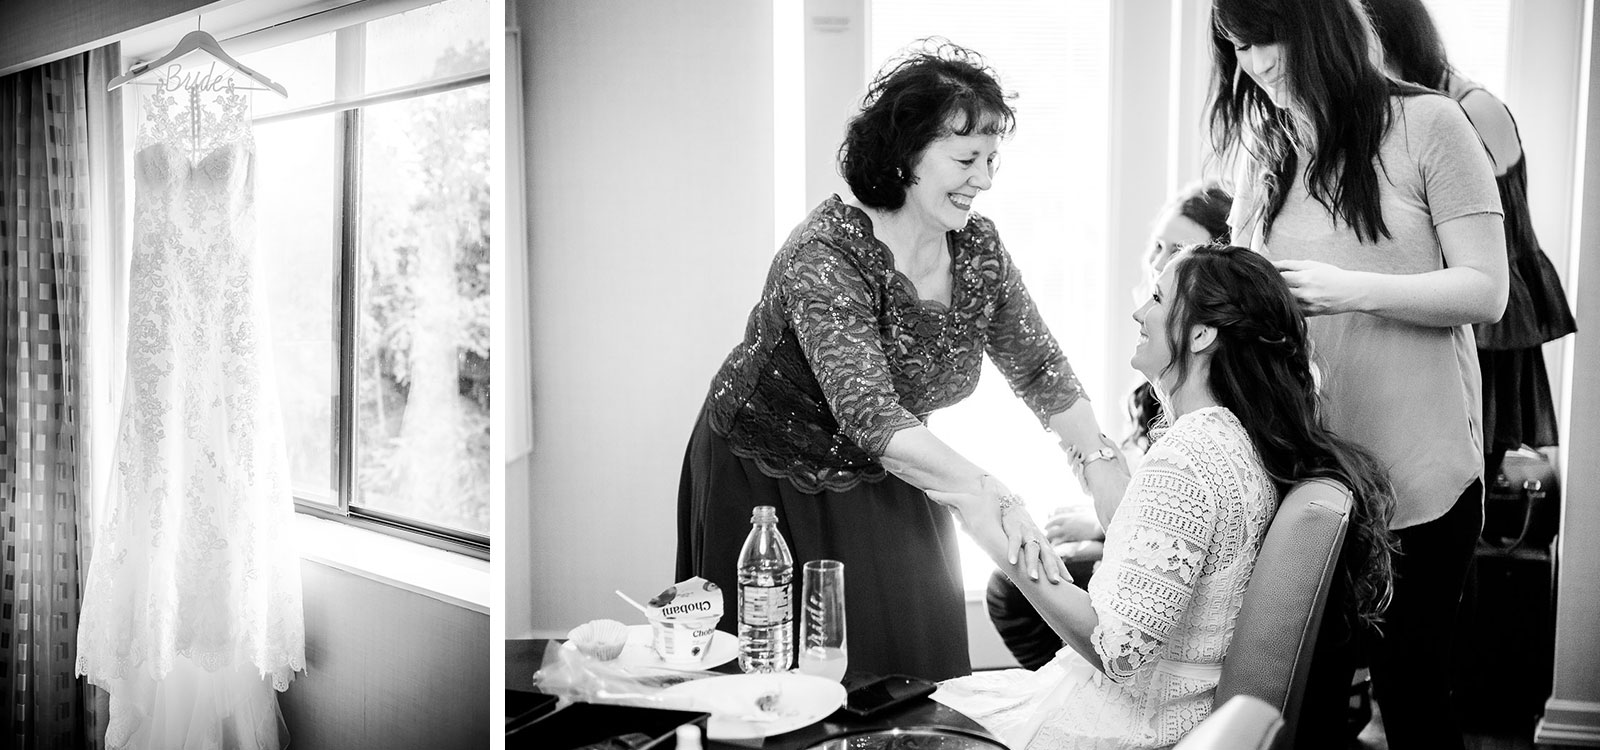 Eric_and_Christy_Photography_Blog_Stephanie_Nick_Wedding-2-3